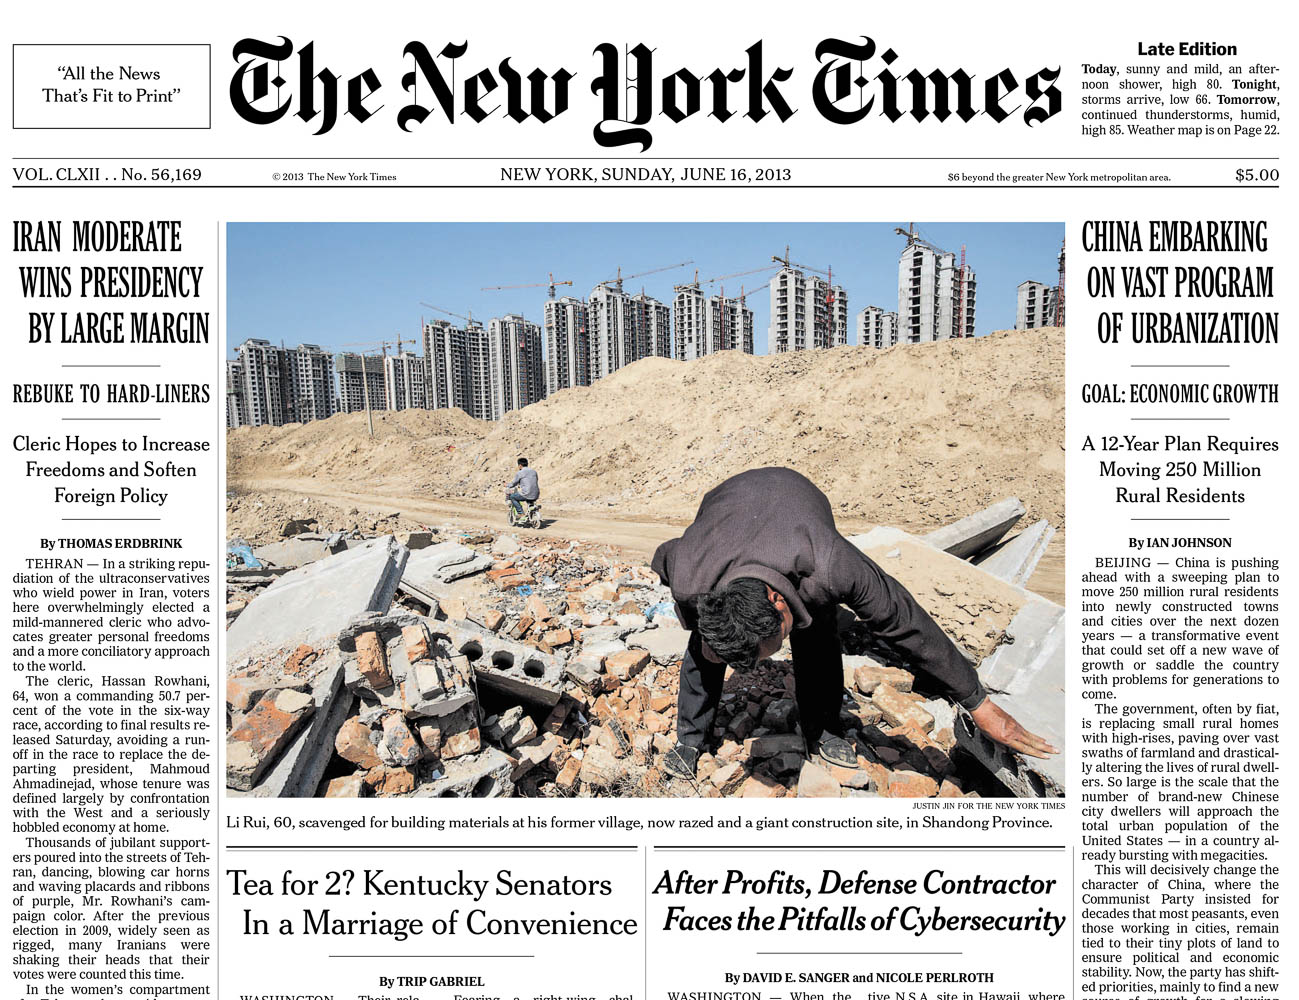 The New York Times published the story in the paper and online.